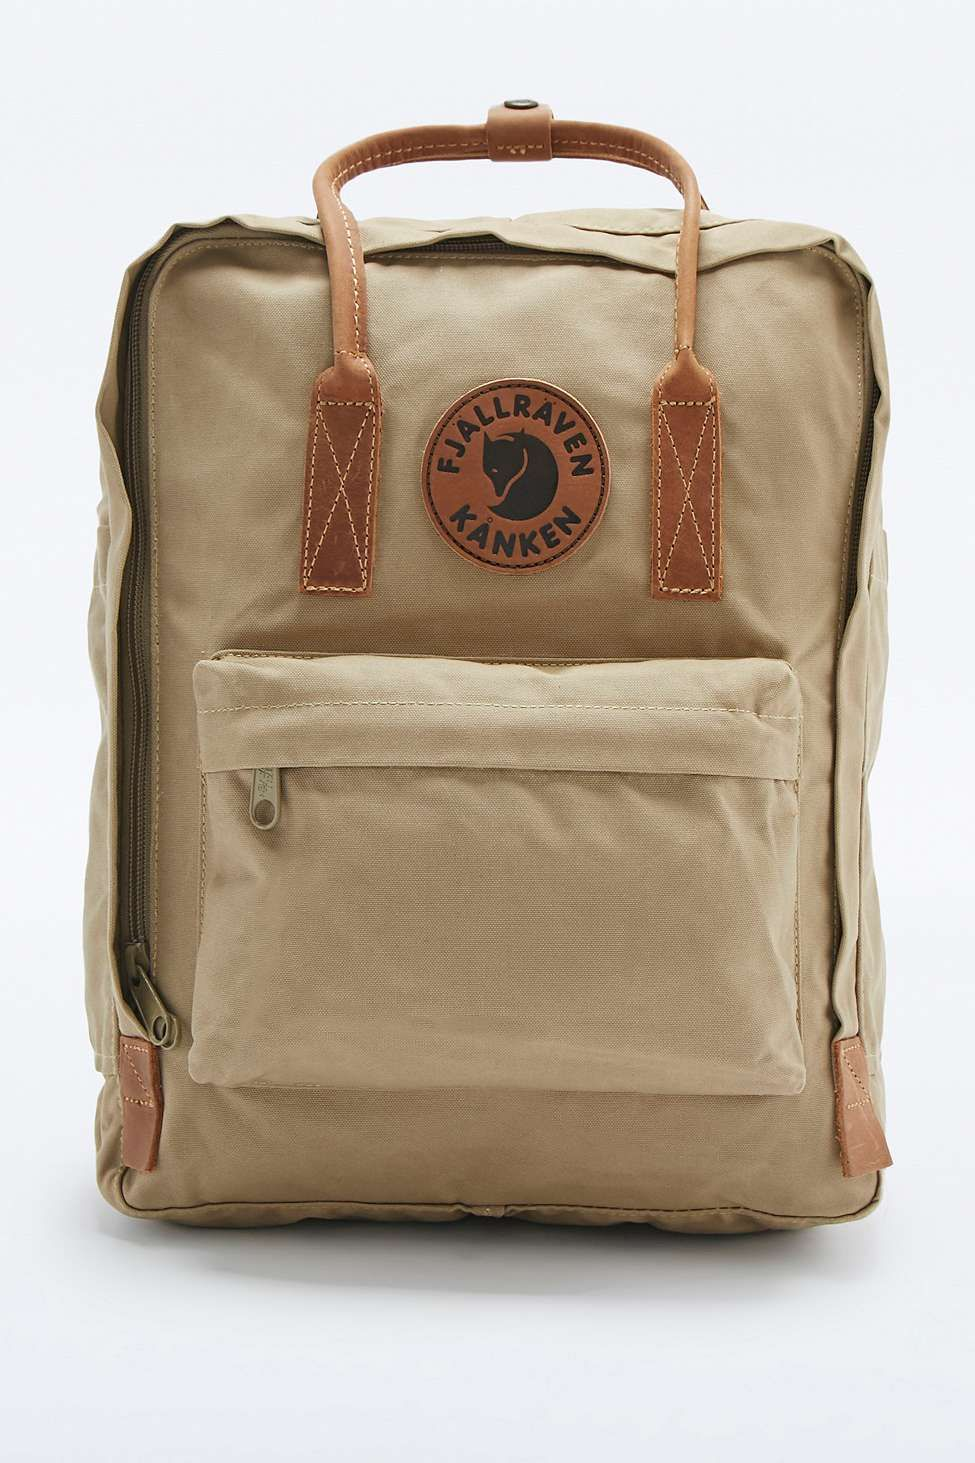 5794b92bd47b5 Fjallraven Kanken No. 2 Sand and Leather Backpack